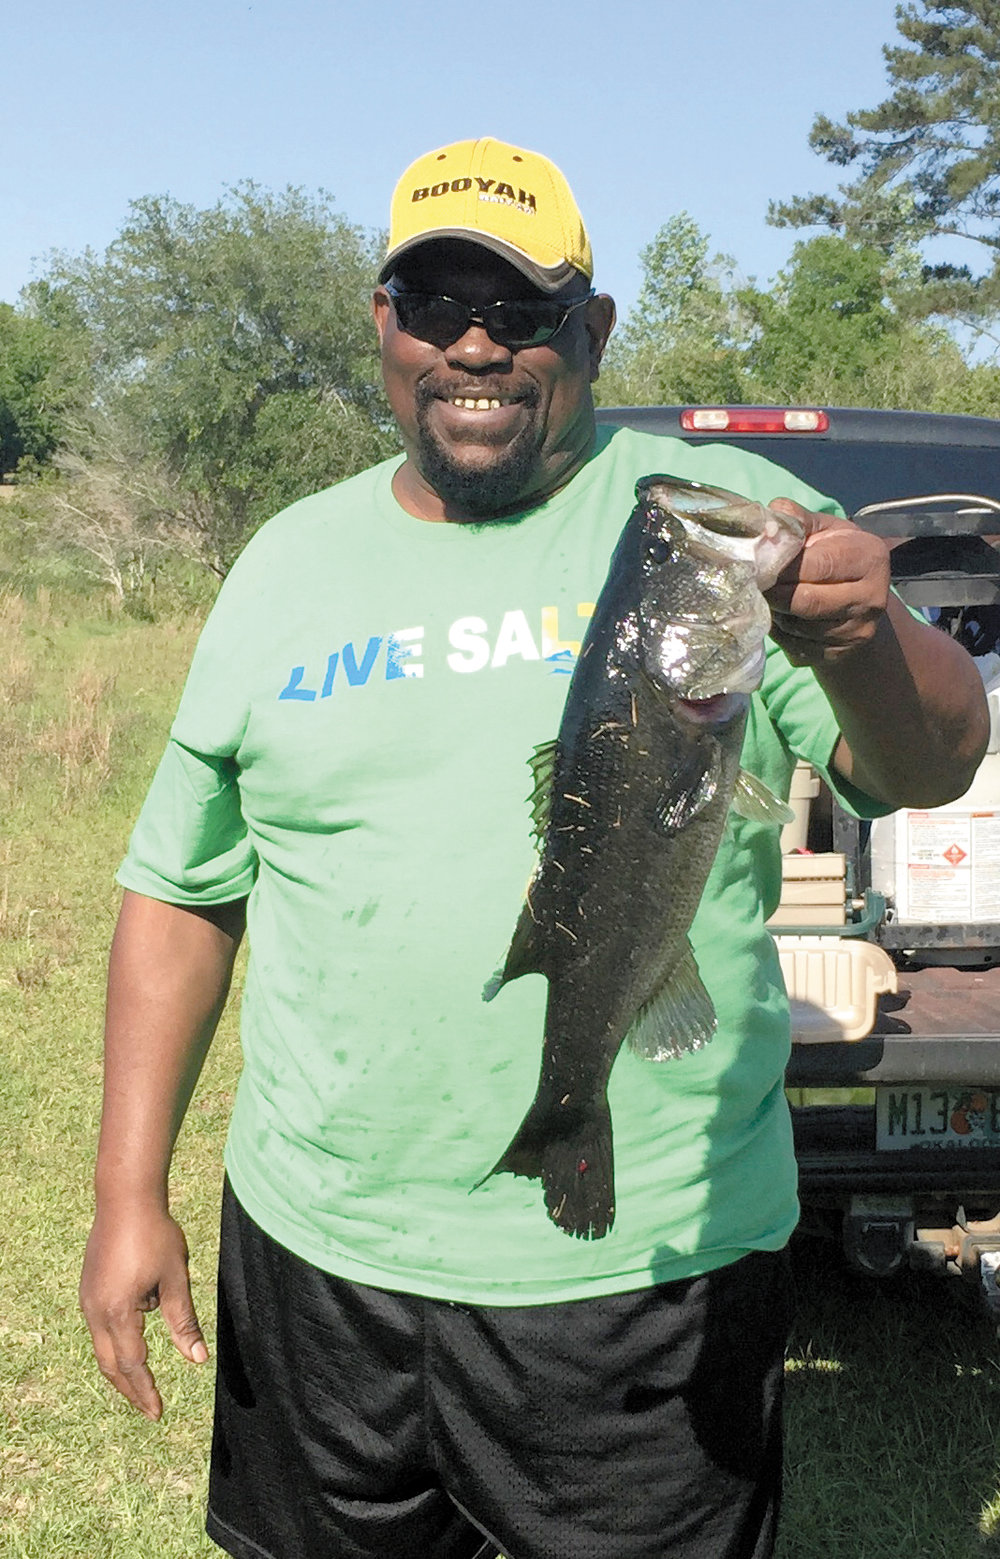 """Crestview's Darryl Williams said he caught this 5-pound, 11-ounce bass on a private lake on May 20. """"(I was) fishing with an 8-inch Zoom plum color plas-tic worm, alongside a timber shoreline. It was an explosive bite for an early morning of fishing,"""" Williams said."""